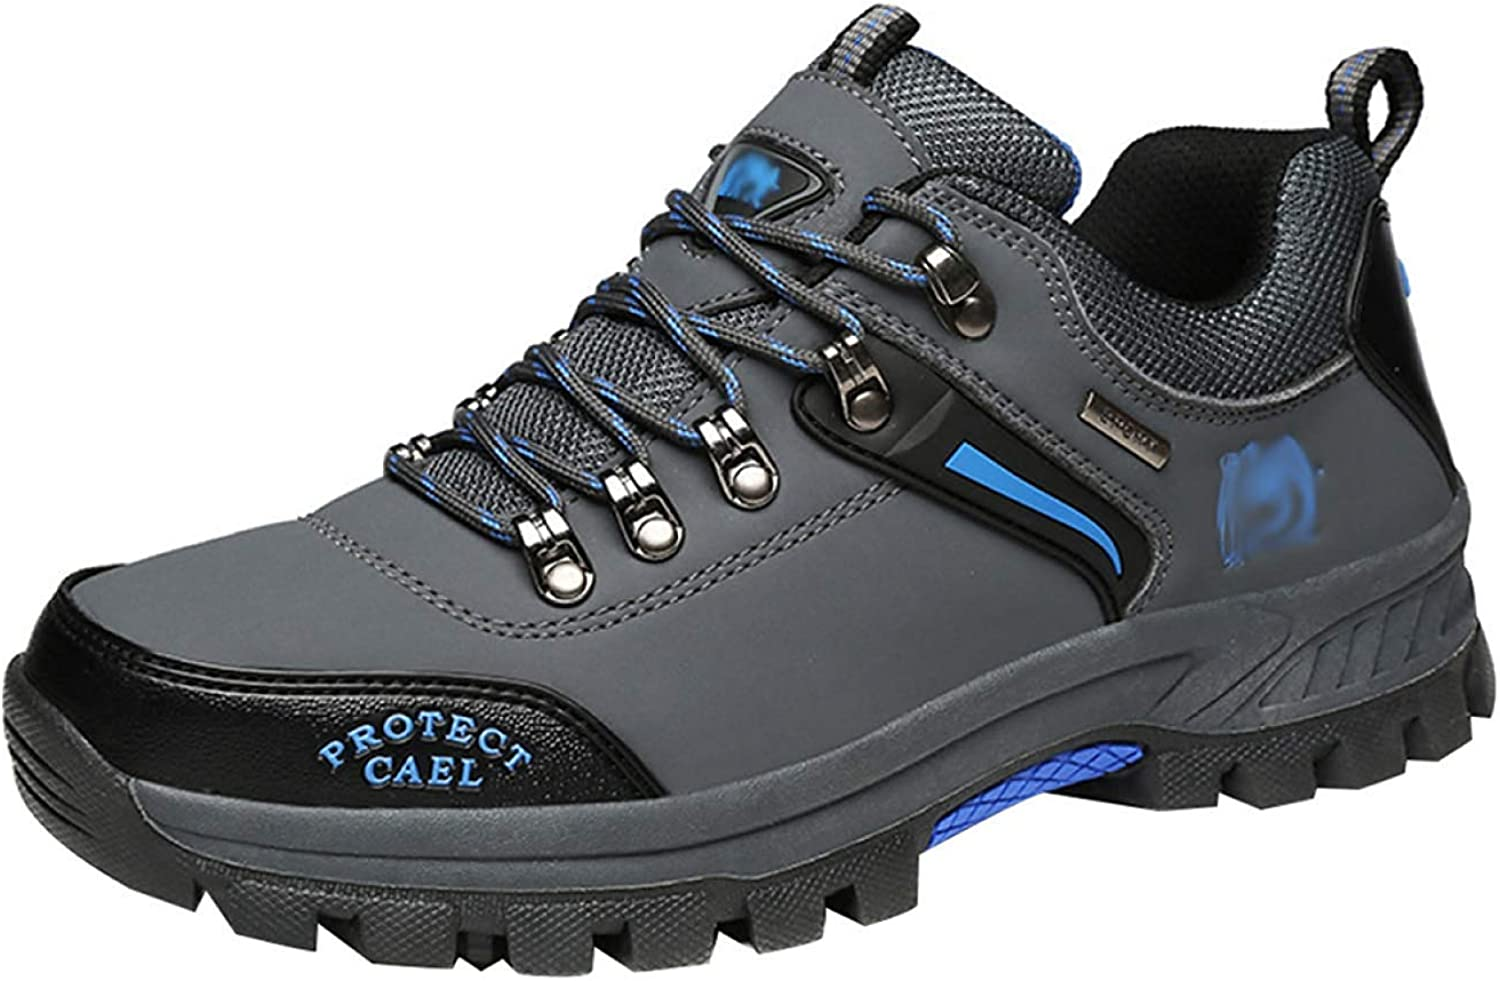 Fuxitoggo Men's Walking Boots Leather Hiking shoes Sneakers For Outdoor Trekking Training Casual Work (color   25, Size   46EU)